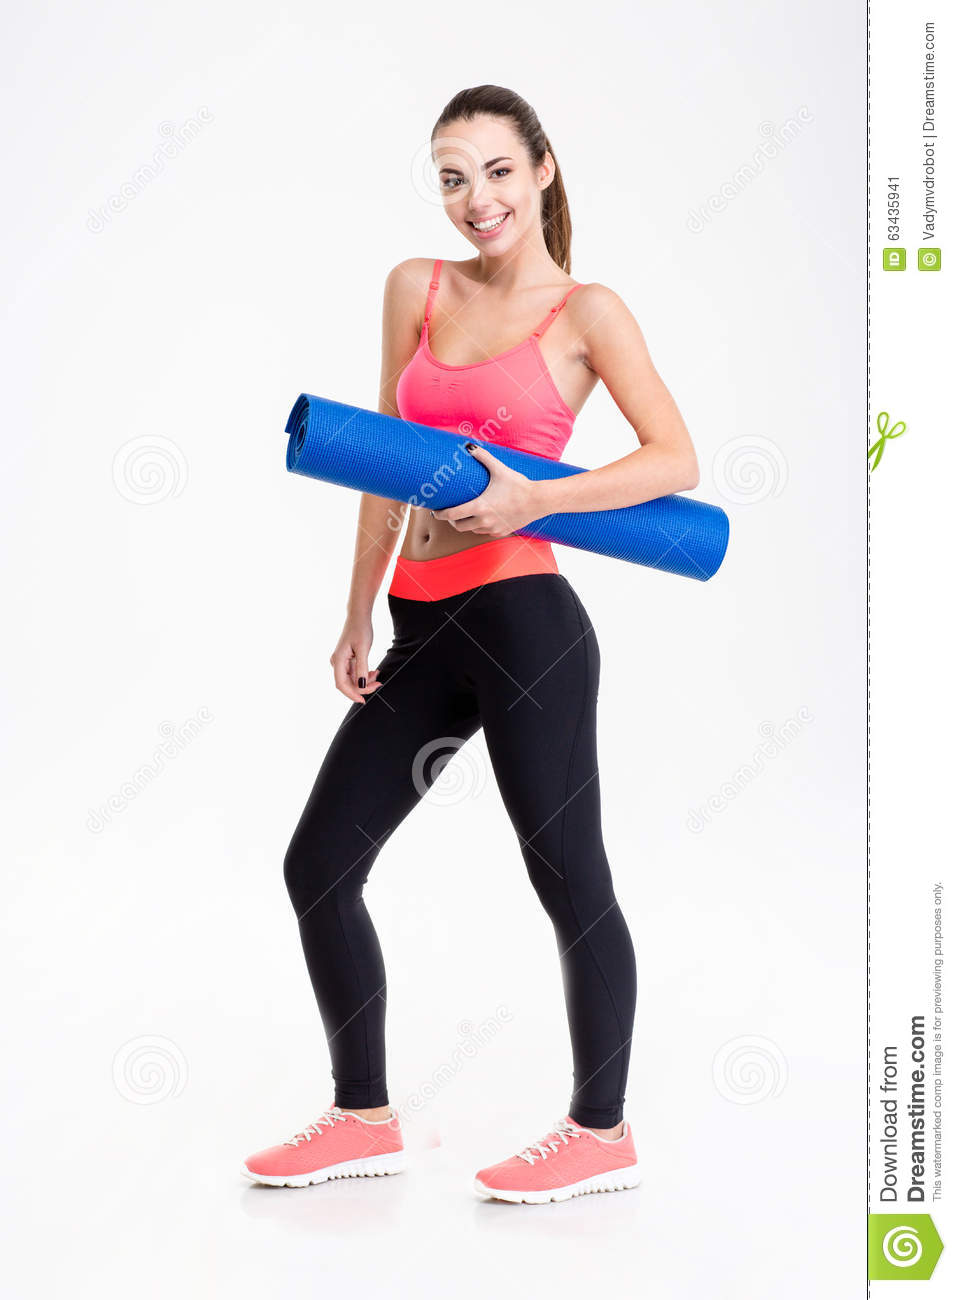 Attractive Smiling Young Fitness Woman Holding Yoga Mat